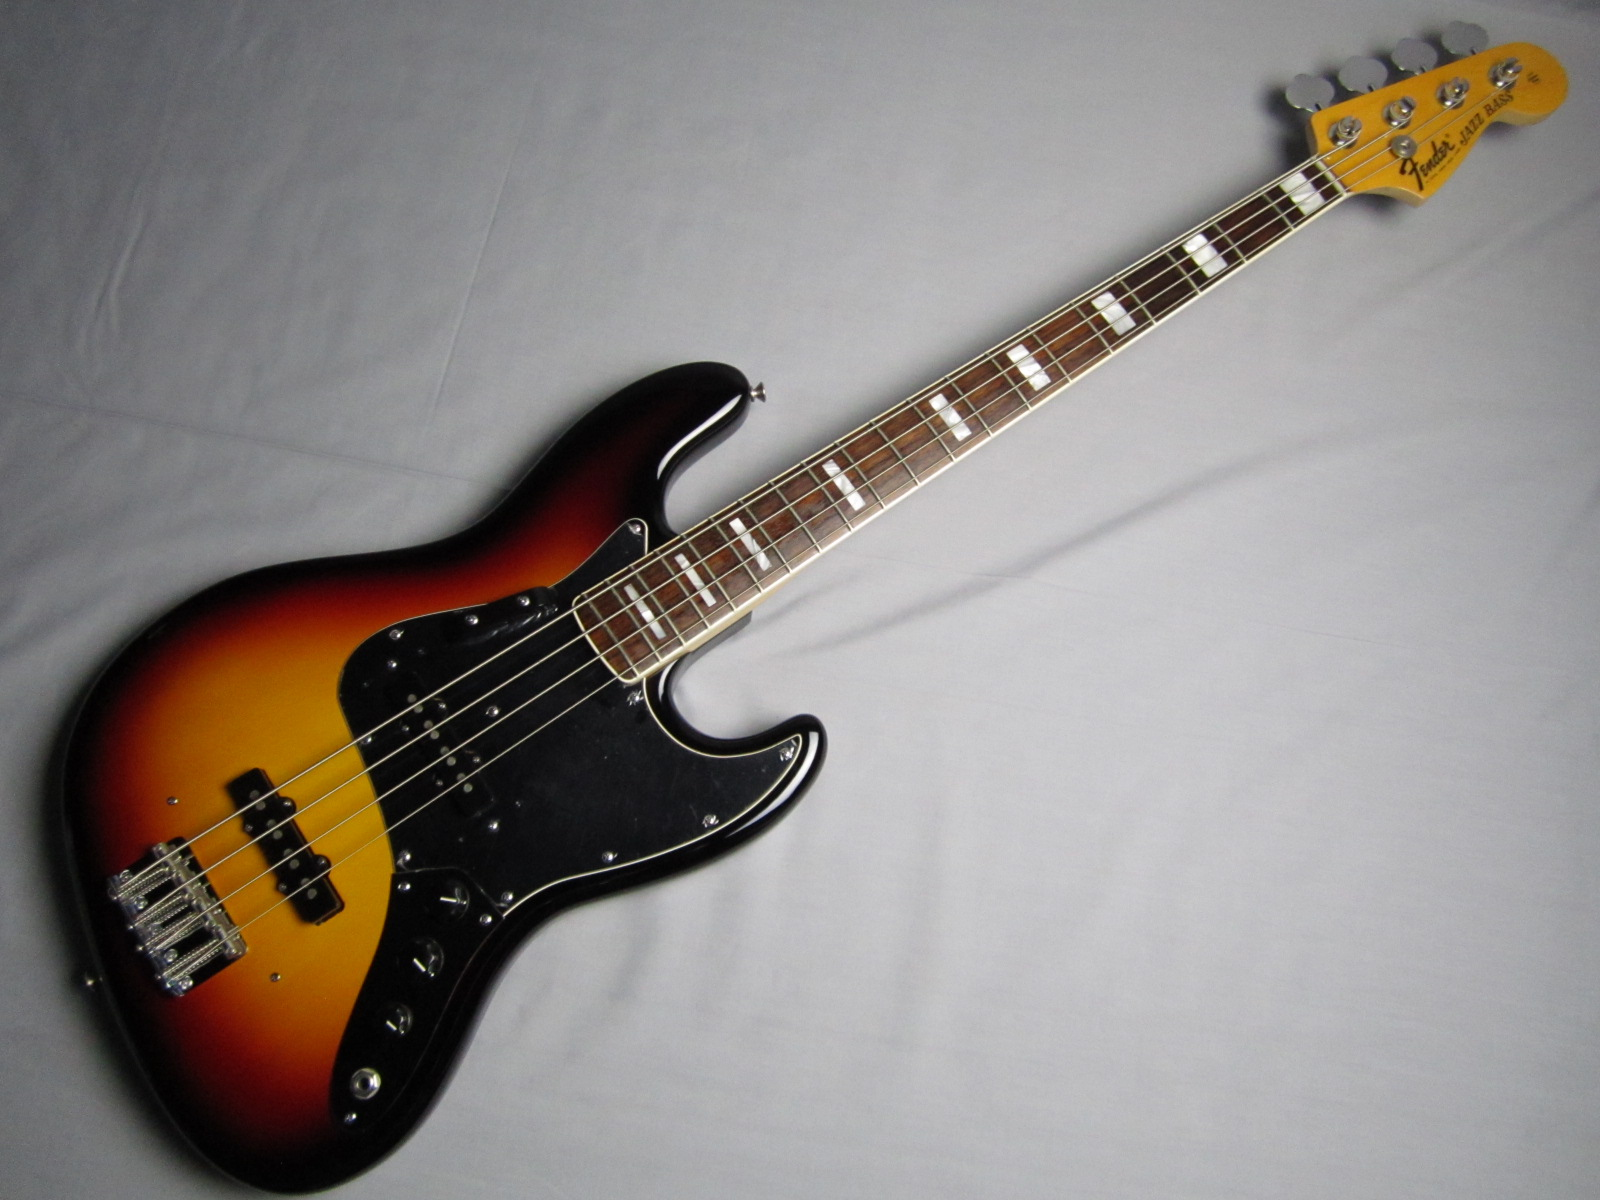 American Vintage '74 Jazz Bass / Rosewoodのボディトップ-アップ画像